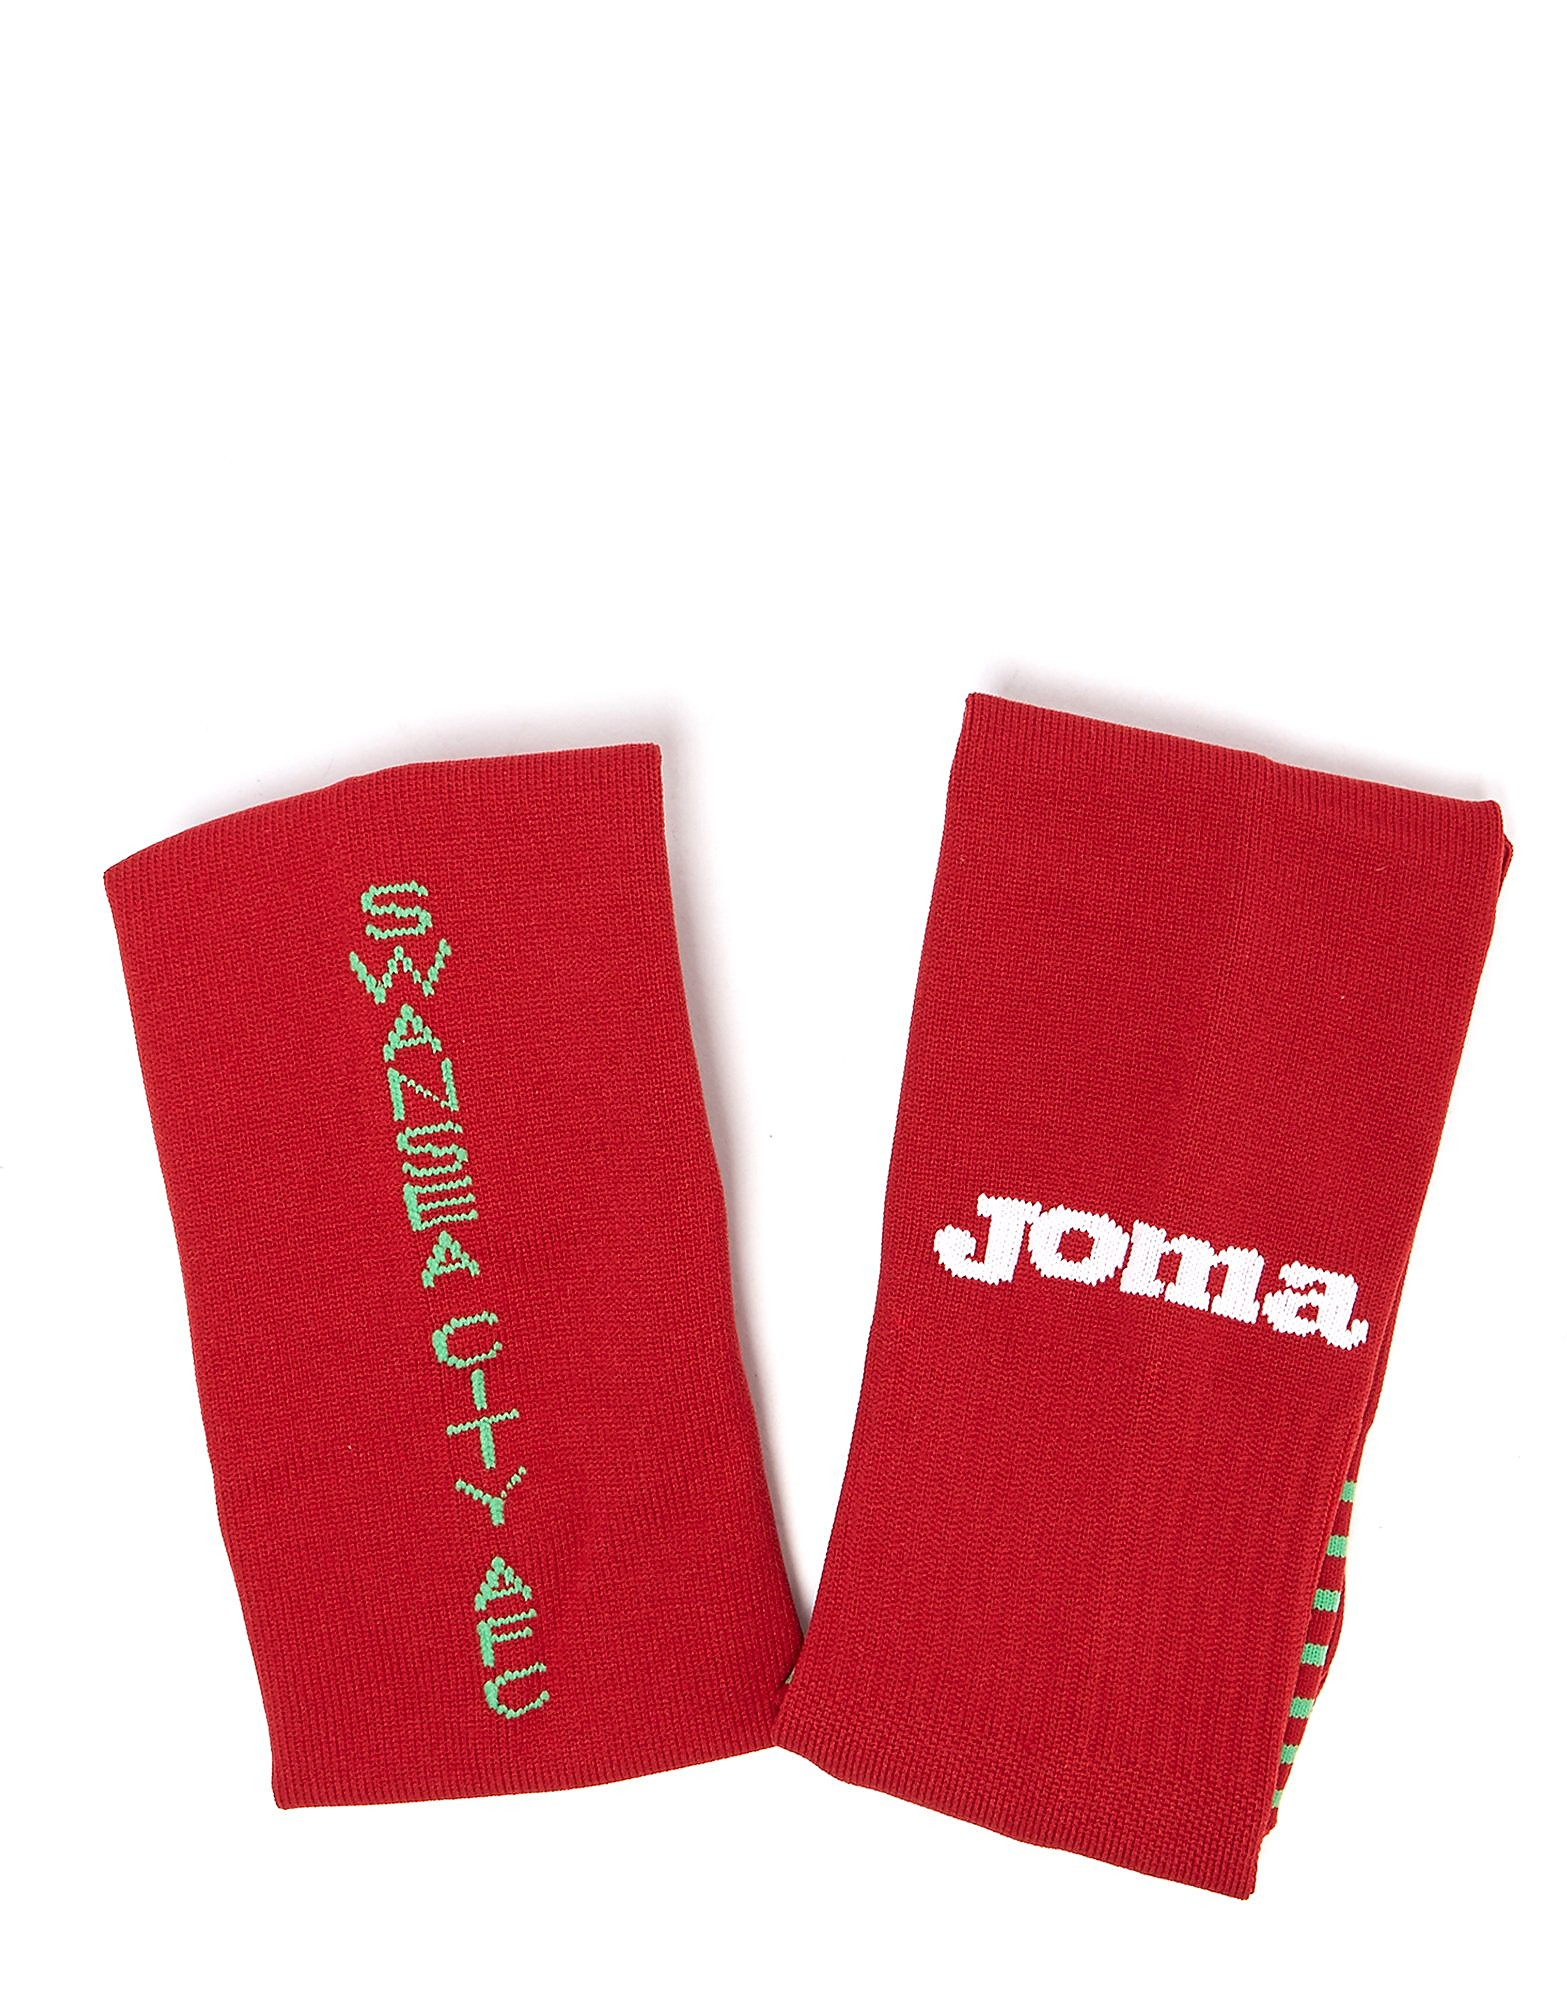 Joma Swansea City FC 2017/18 Away Socks